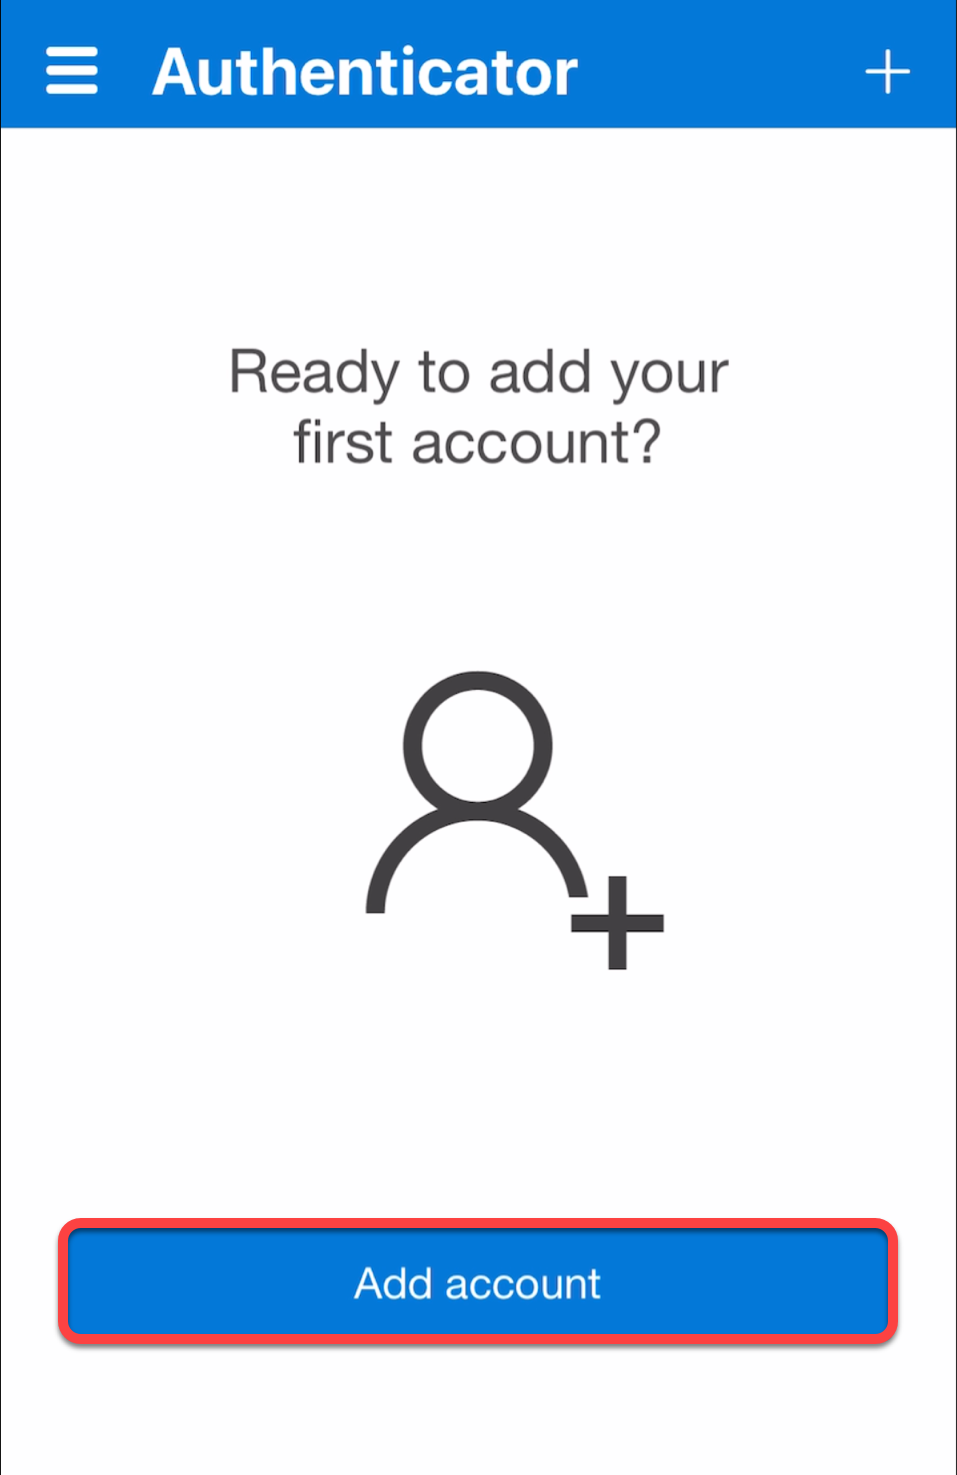 iOS Microsoft Authenticator app add account